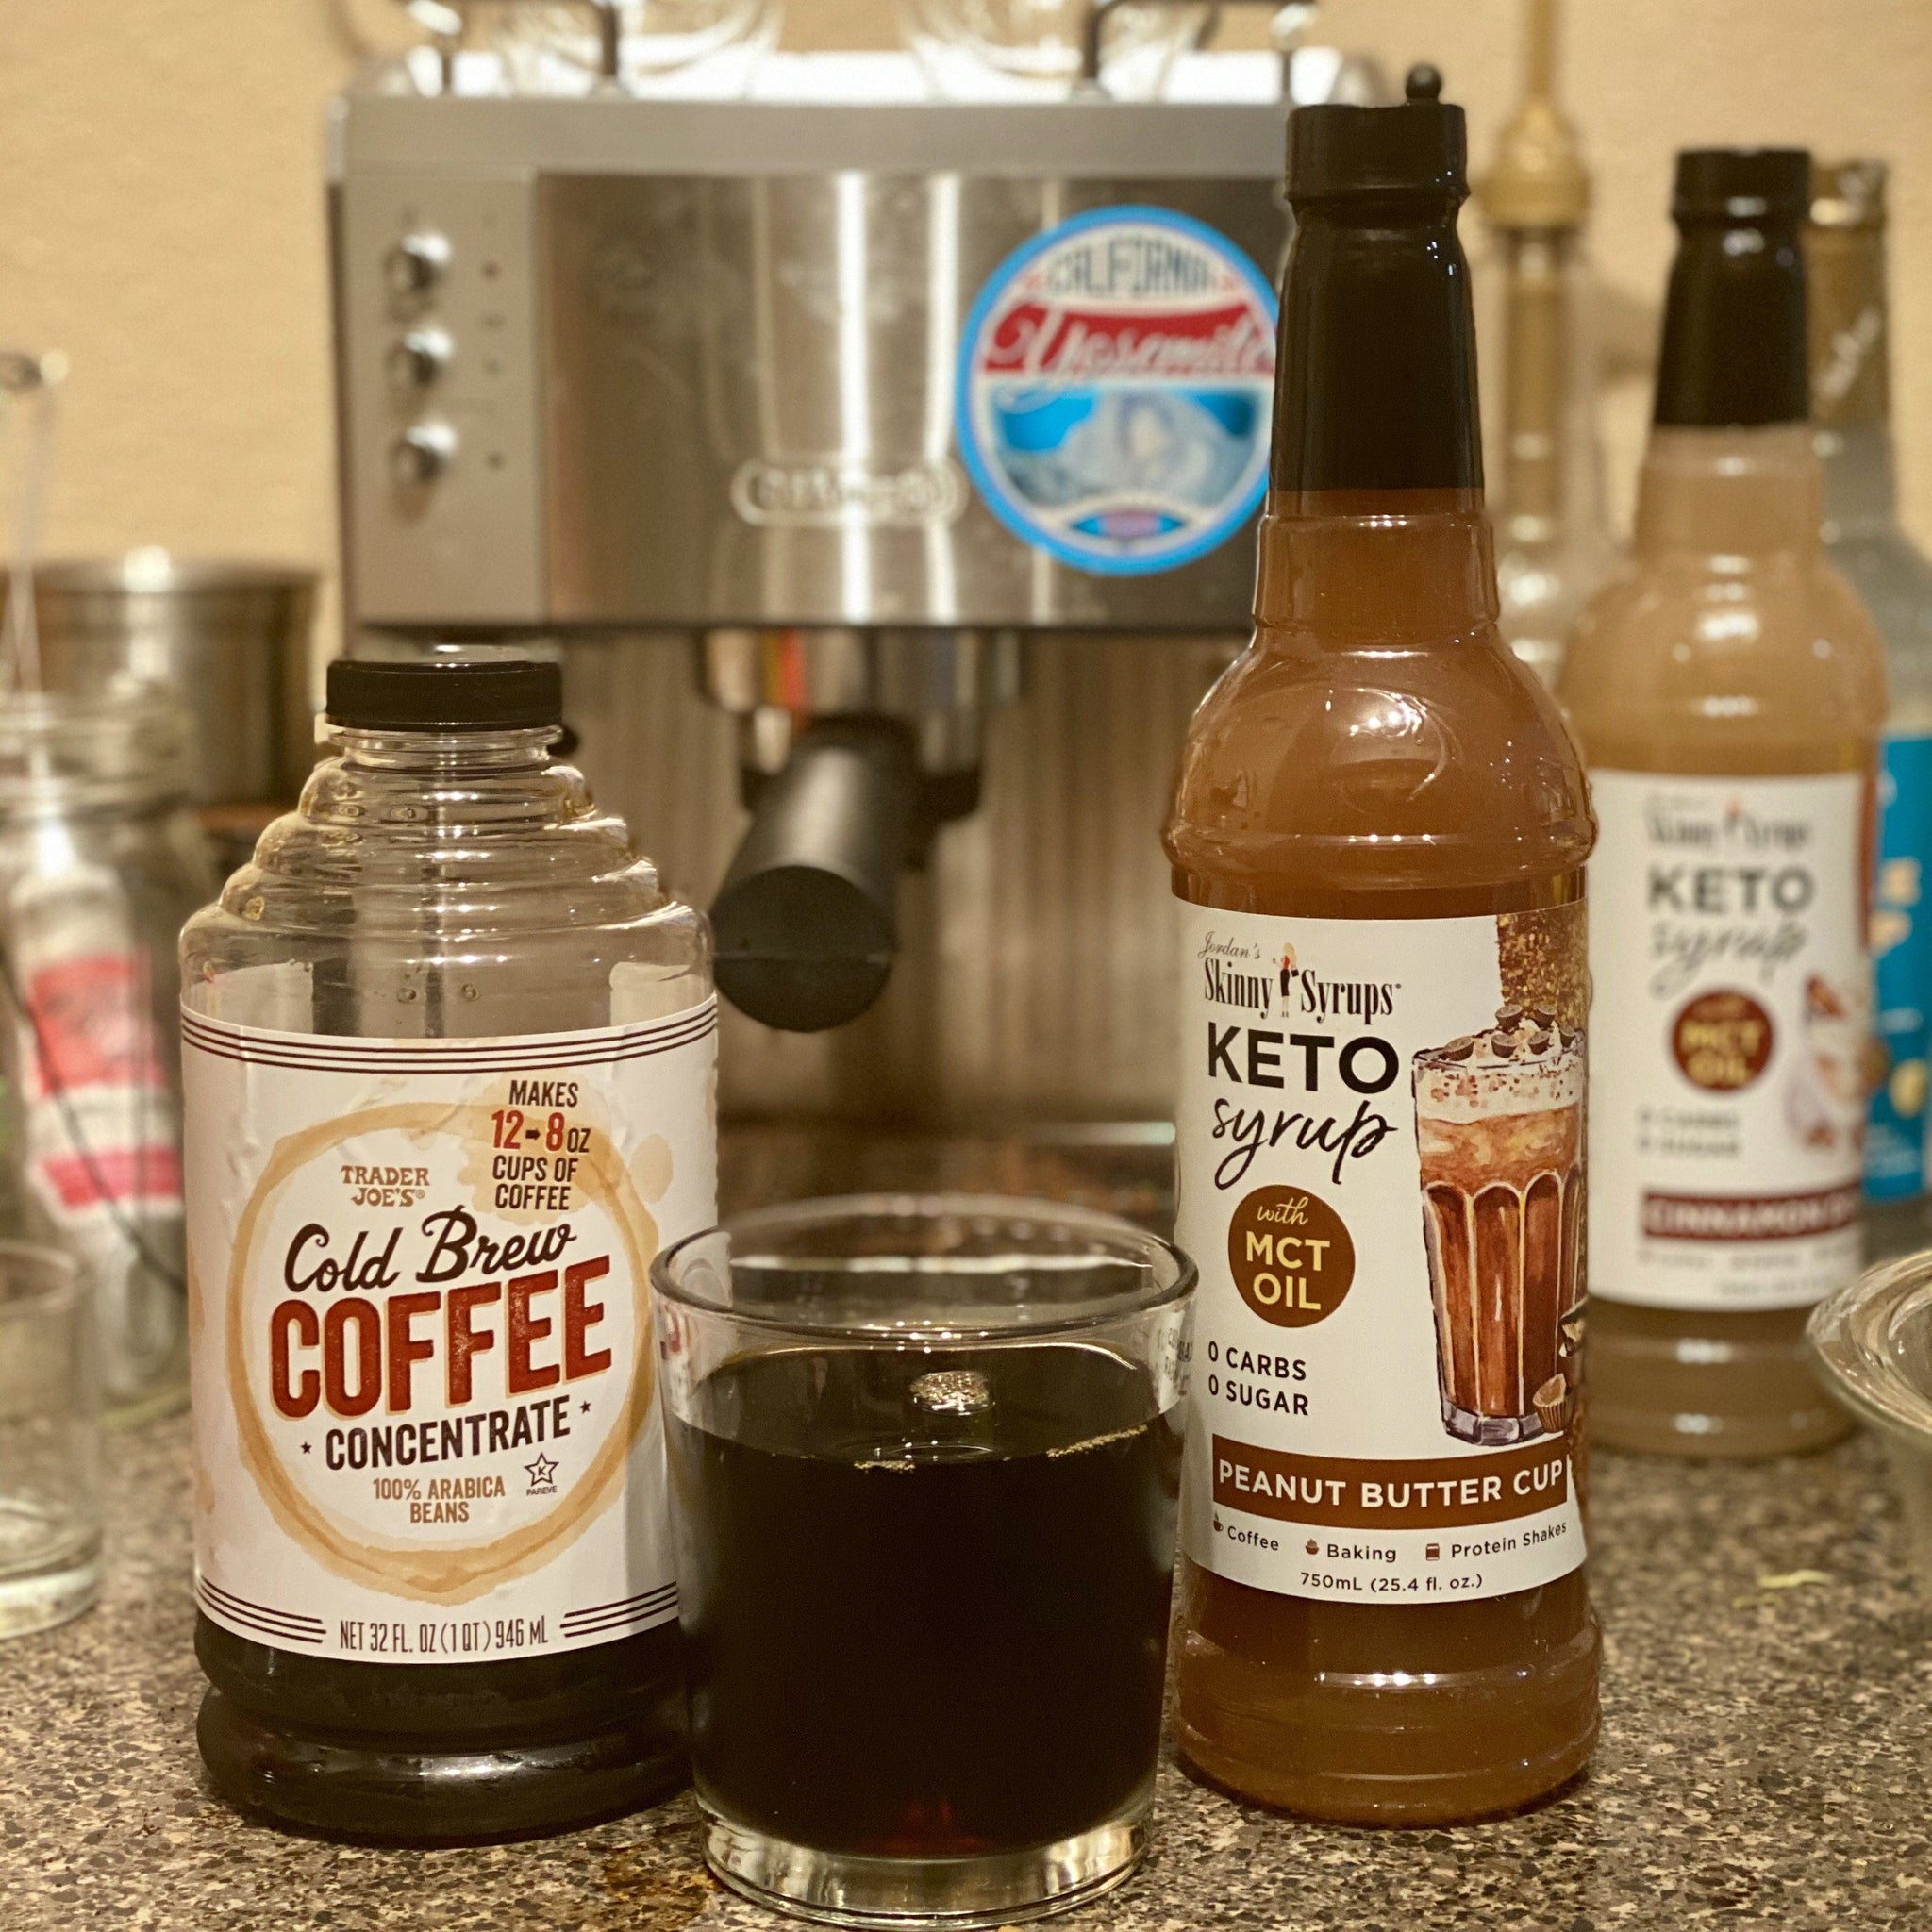 Keto Peanut Butter Cup Syrup with MCT - Skinny Mixes